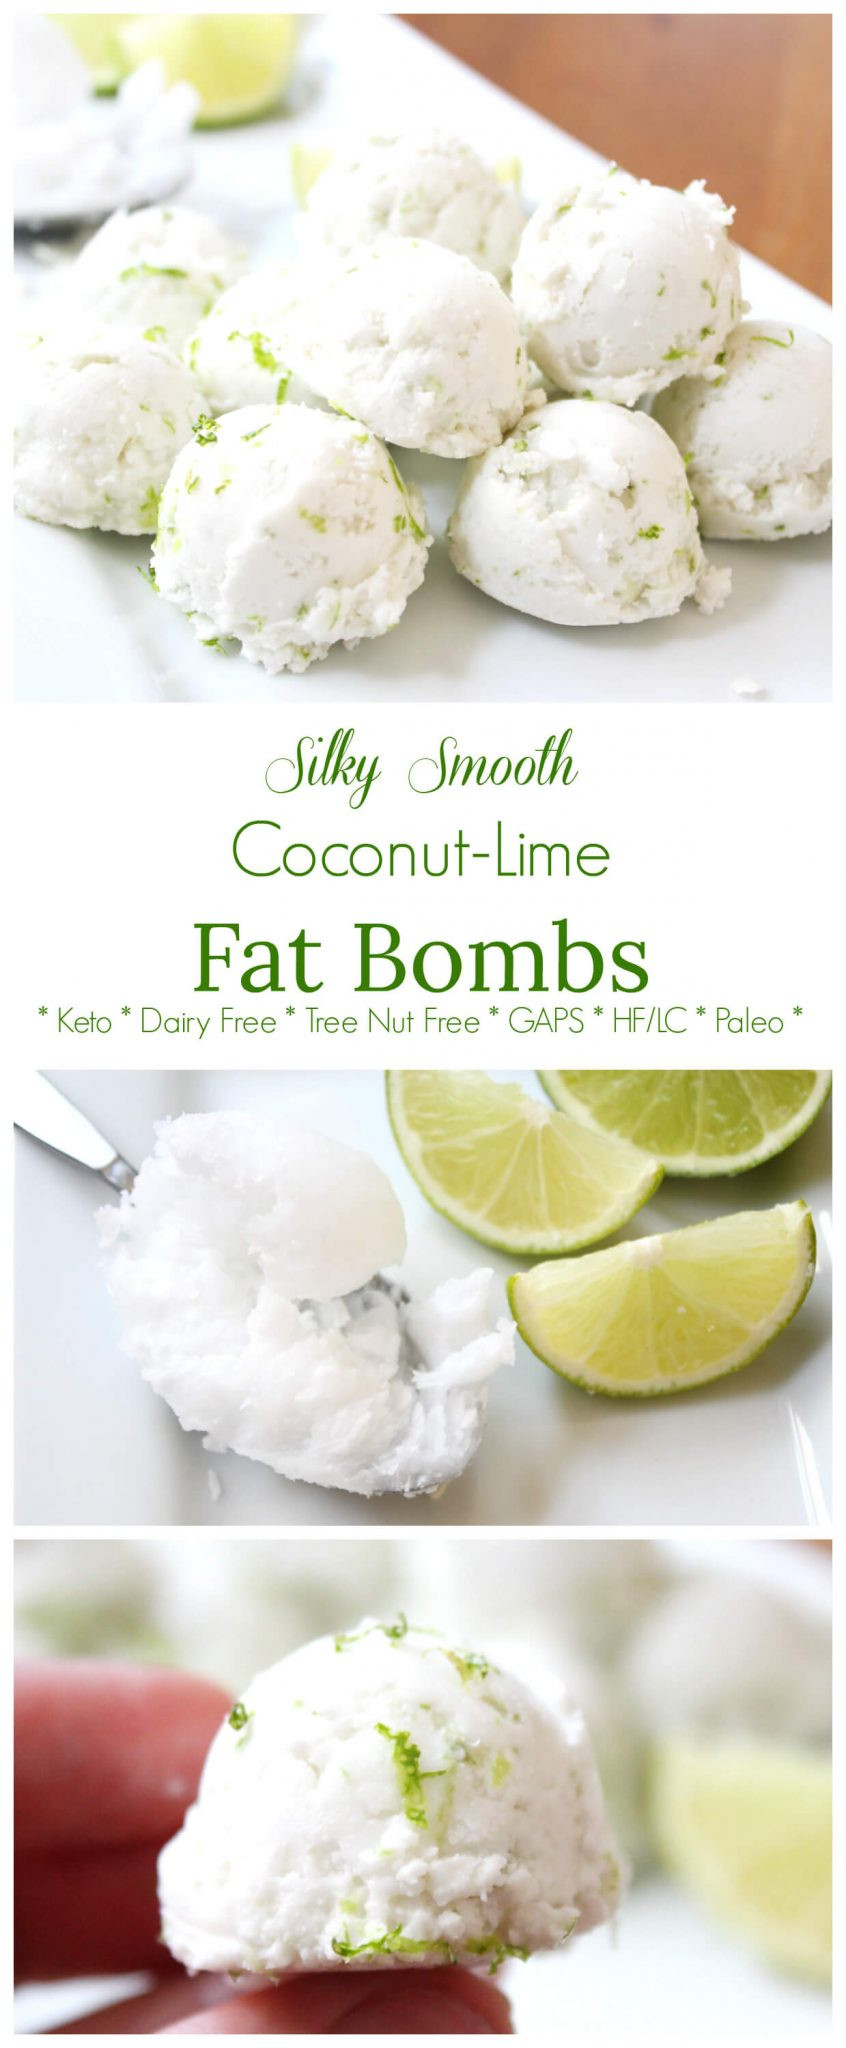 Are Limes Ok On Keto Diet  Silky Smooth Coconut Lime Fat Bombs Keto GAPS Paleo